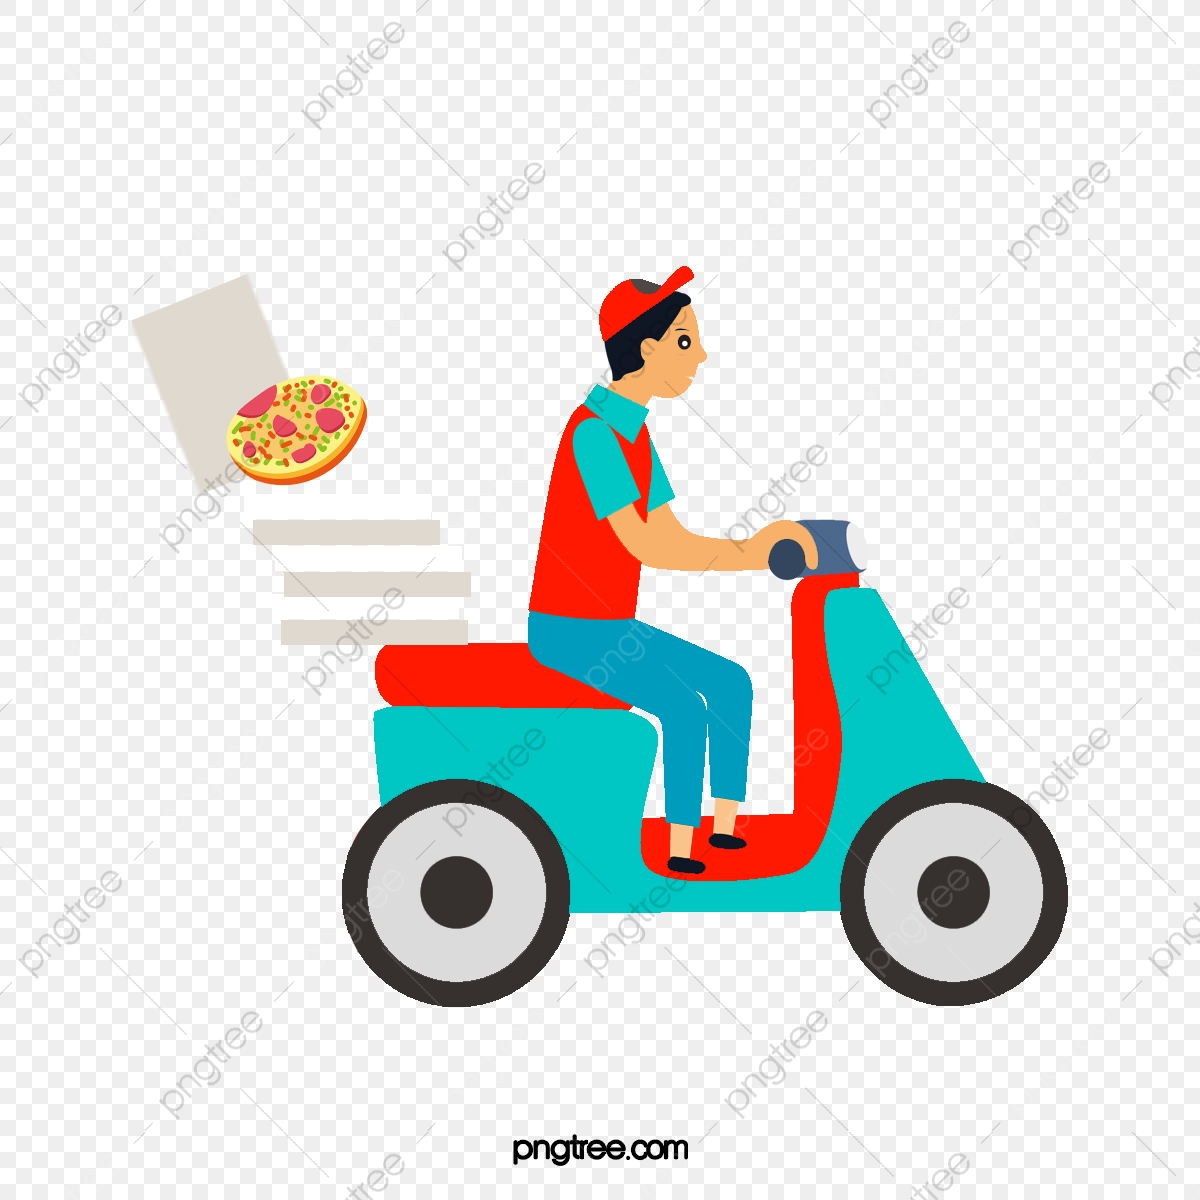 The Pizza Delivery Man, Man Clipart, Pizza Delivery, Ride.